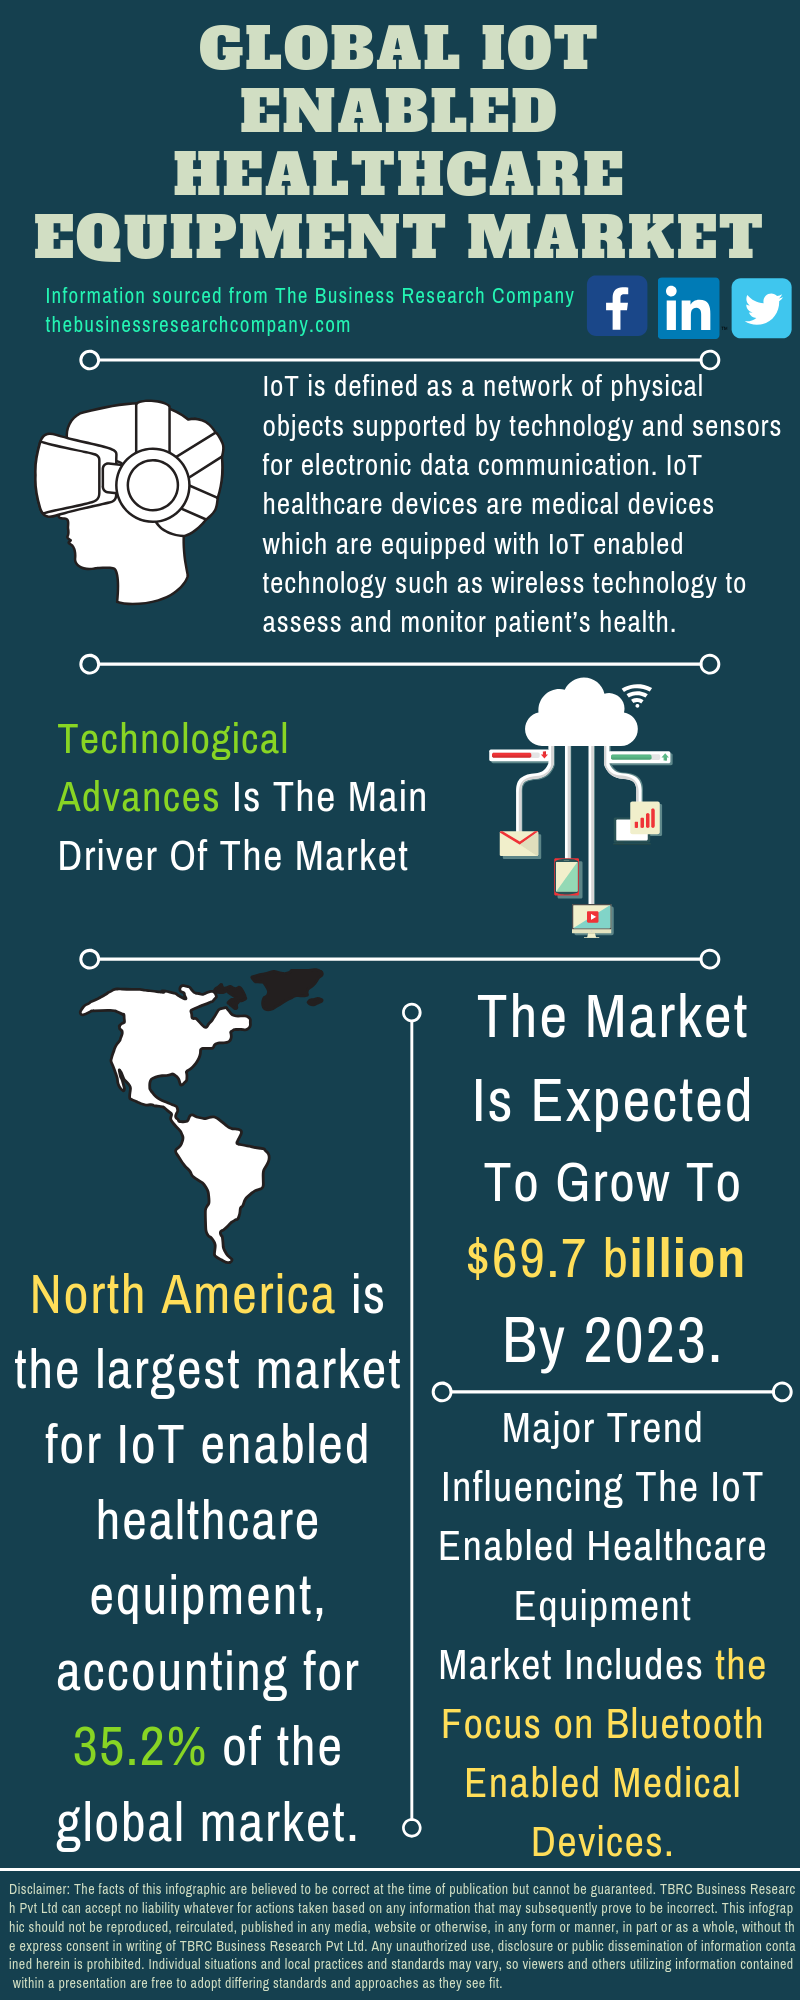 IoT Enabled Healthcare Equipment Market